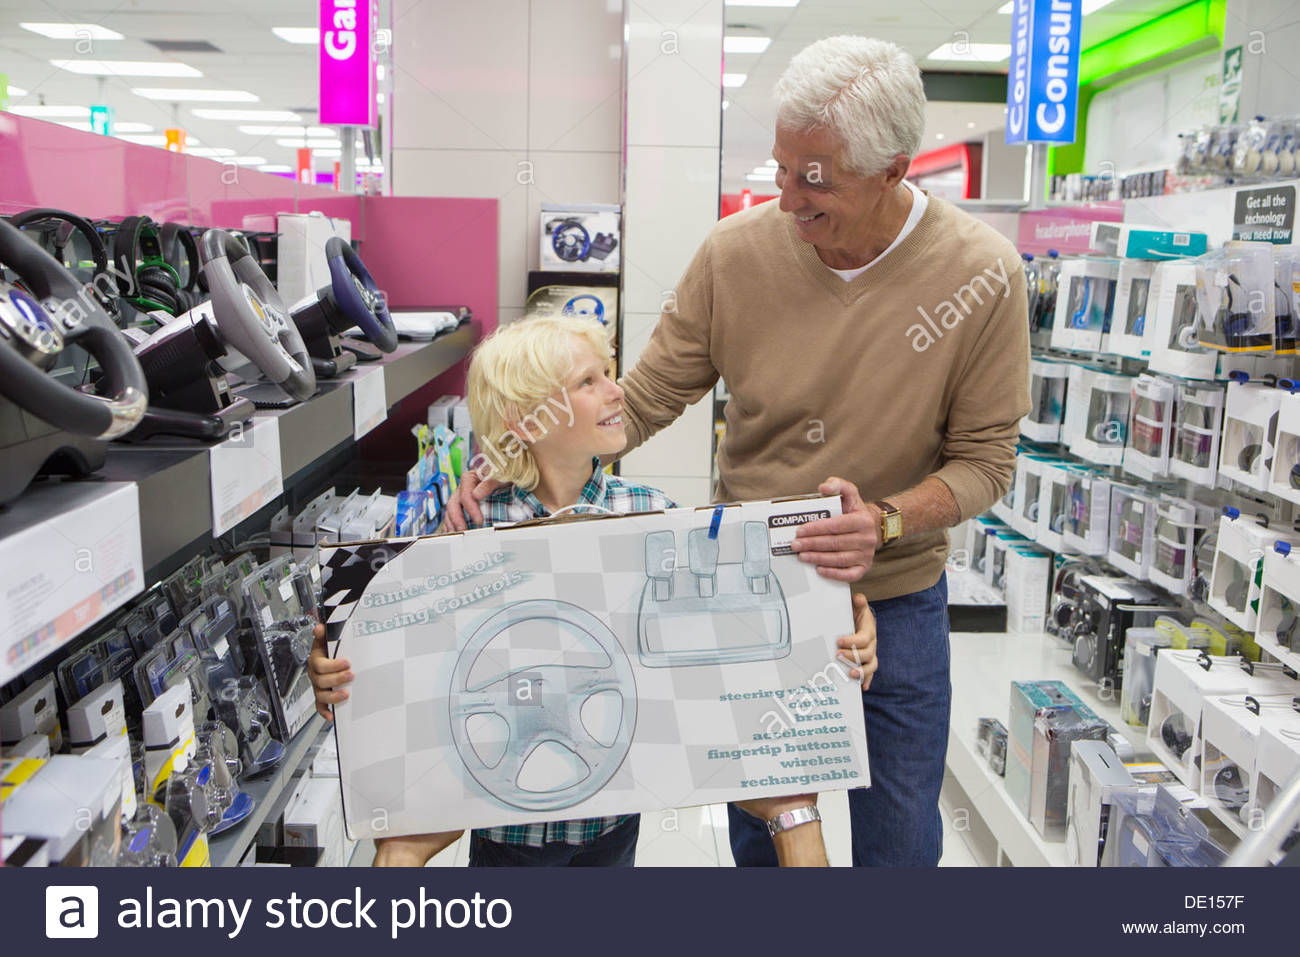 Smiling grandfather and grandson holding video game box in electronics store - Stock Image